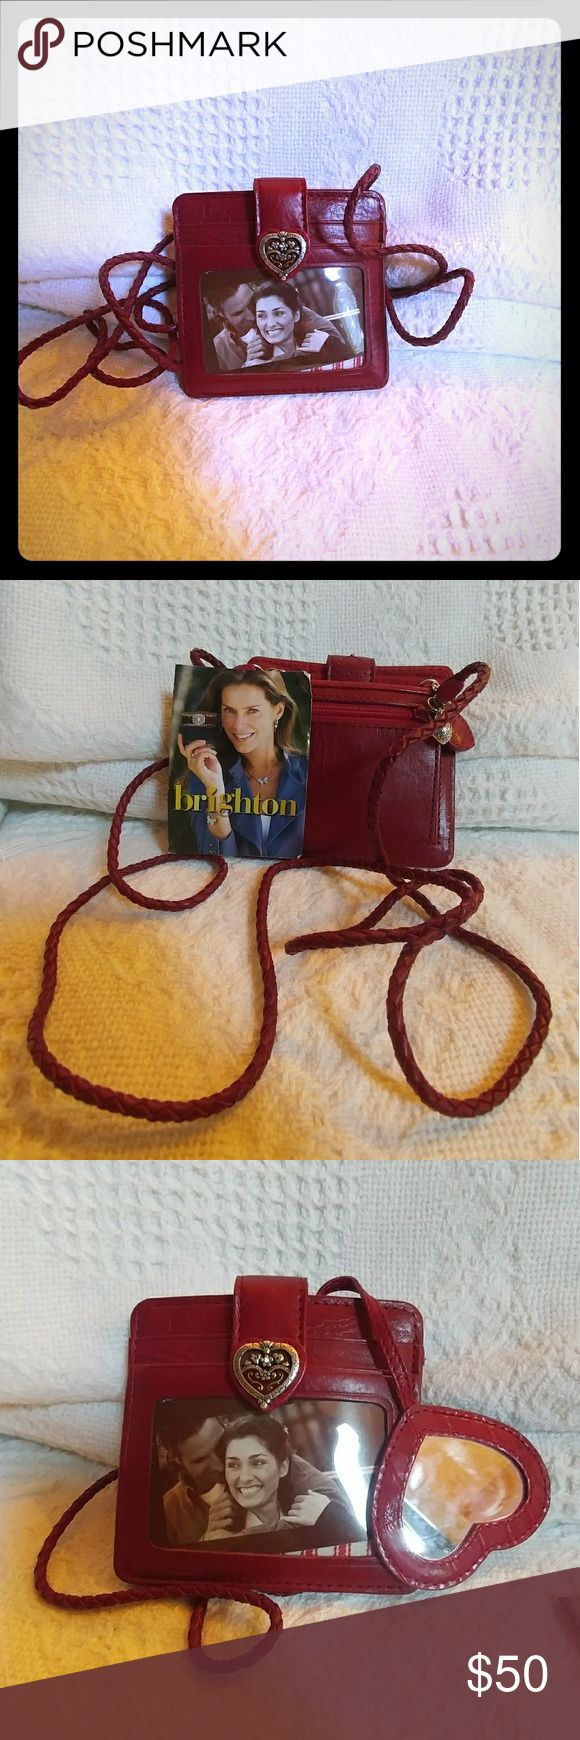 Brighton wallet/coin purse with strap/necklace NWOT - Brand New.  Never used.  Cherry red leather.  Holds coins, credit cards and cash.  Has attached heart shaped mirror.  Perfect for events where a larger purse is a pain it for every day.  Very cute. Brighton Bags